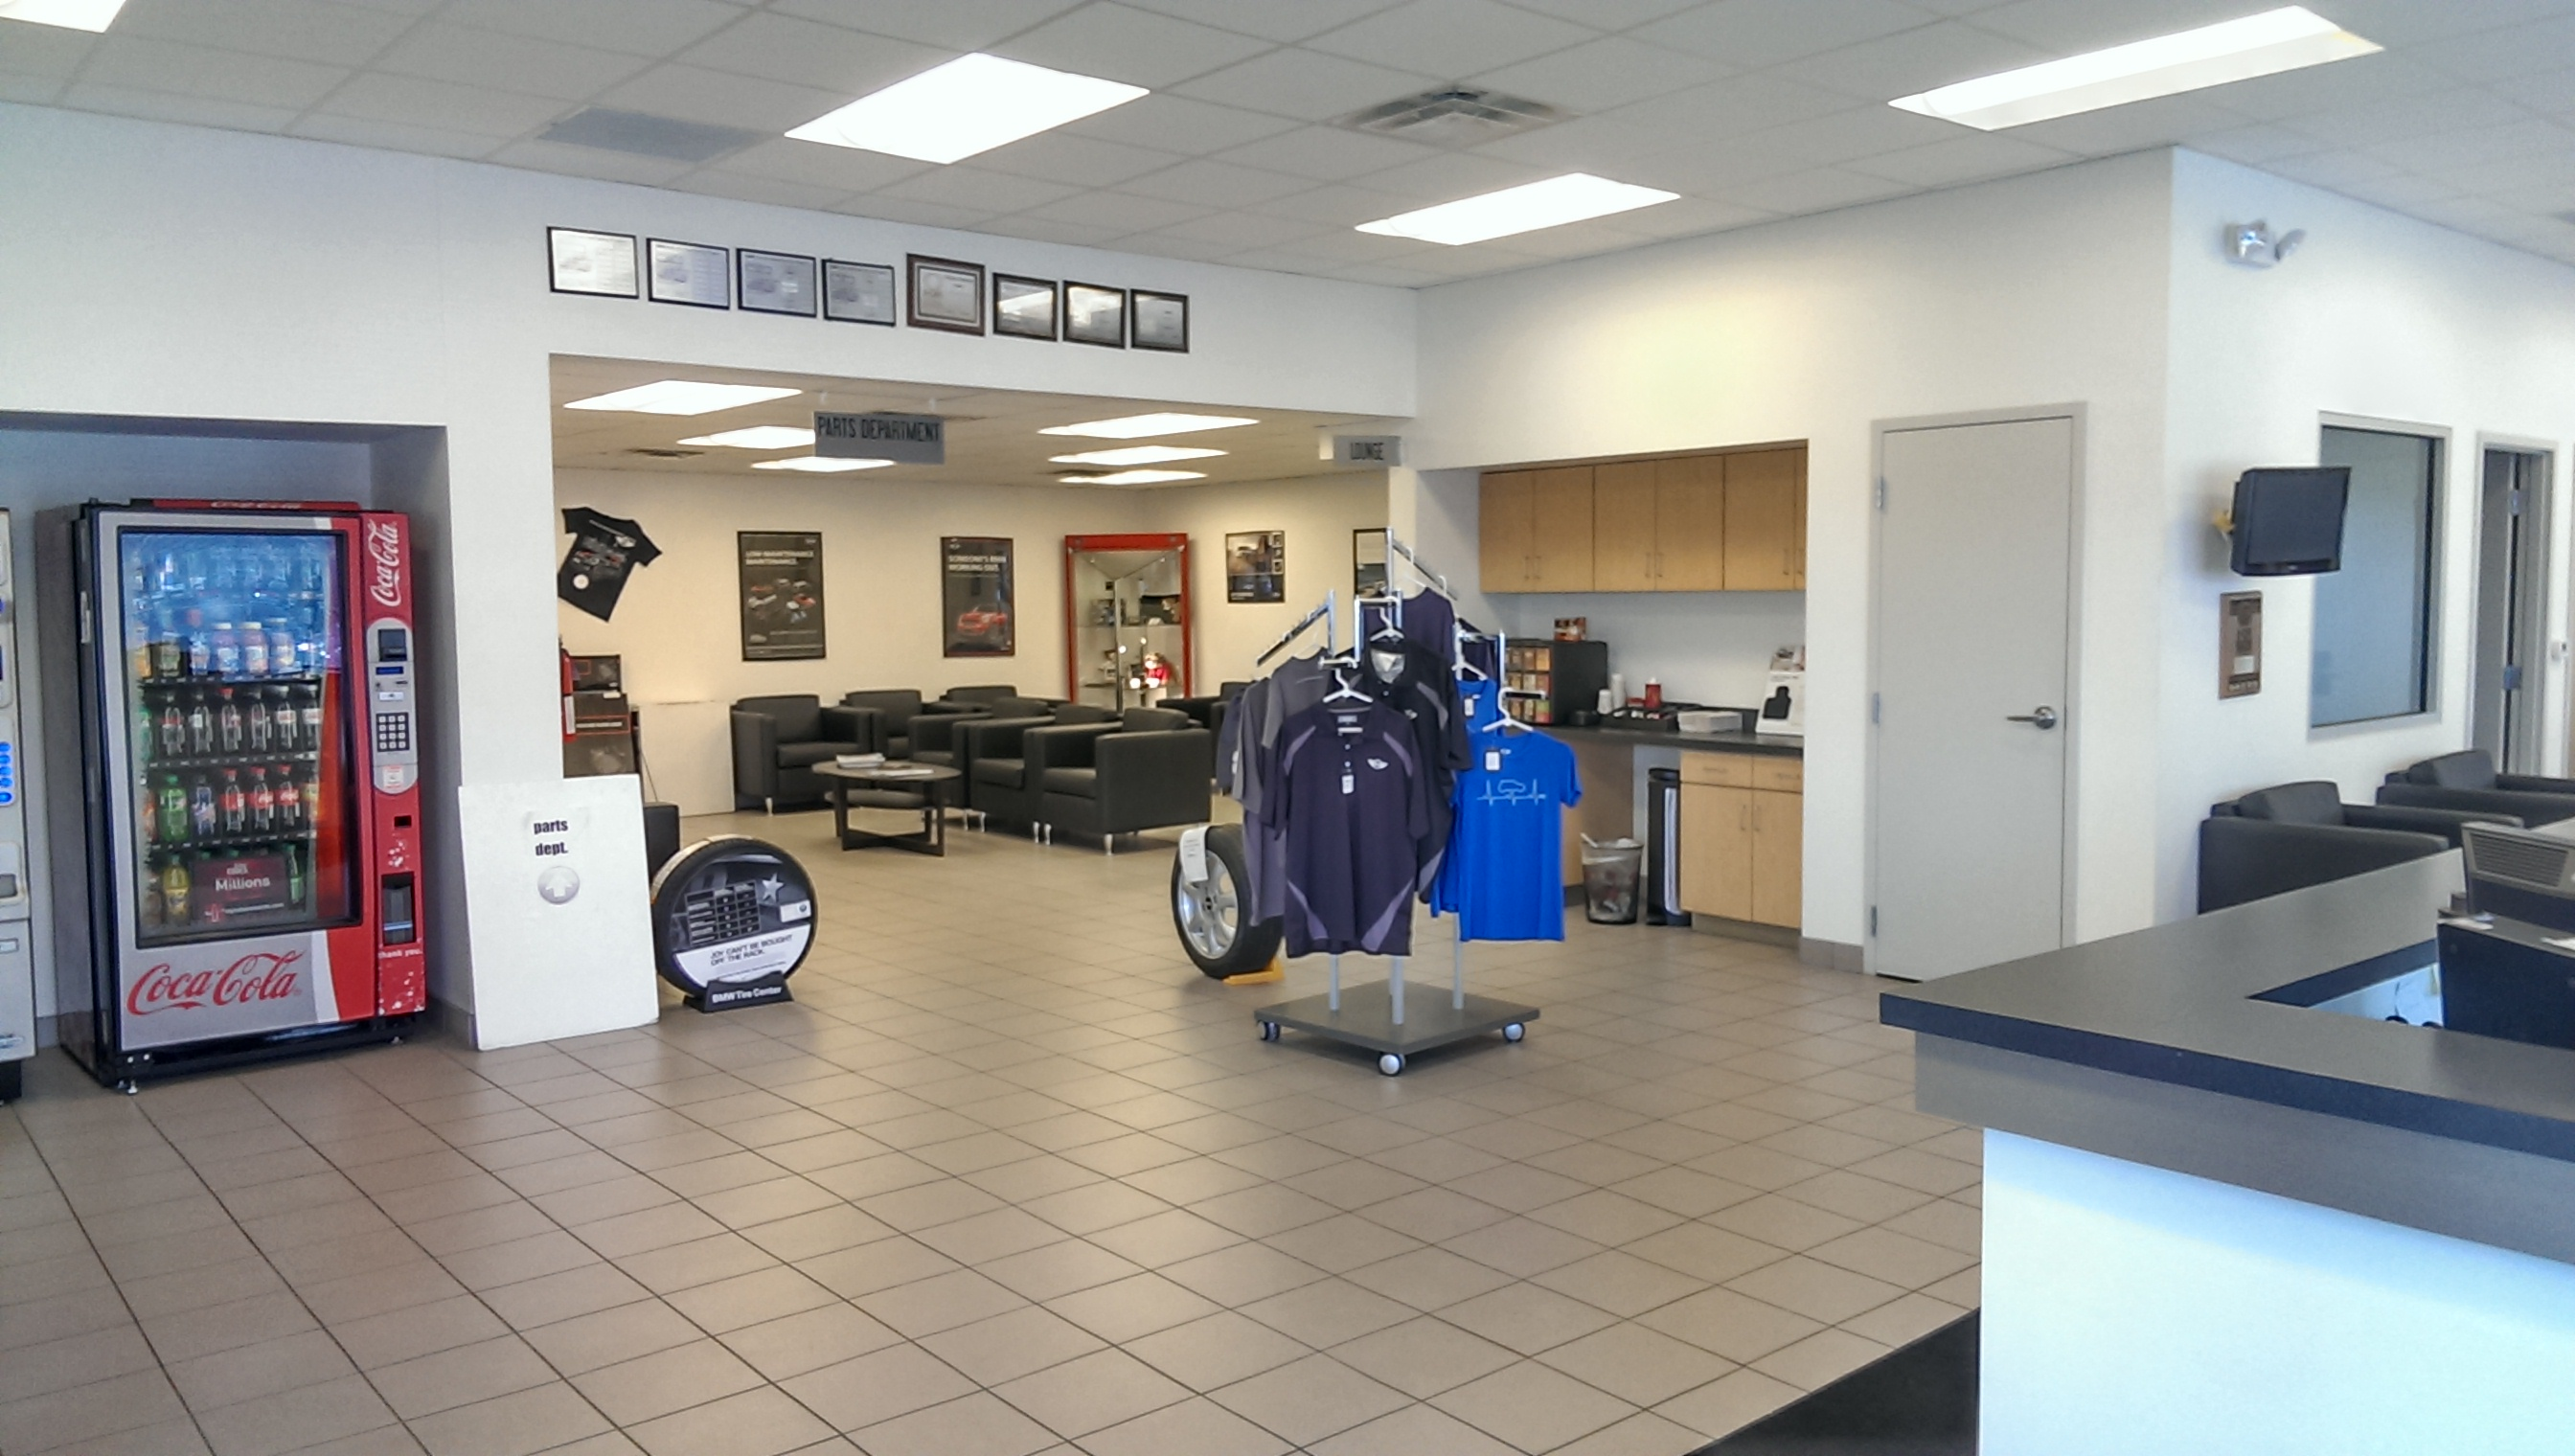 Bmw of annapolis collision center annapolis maryland md for Mercedes benz of annapolis service center annapolis md